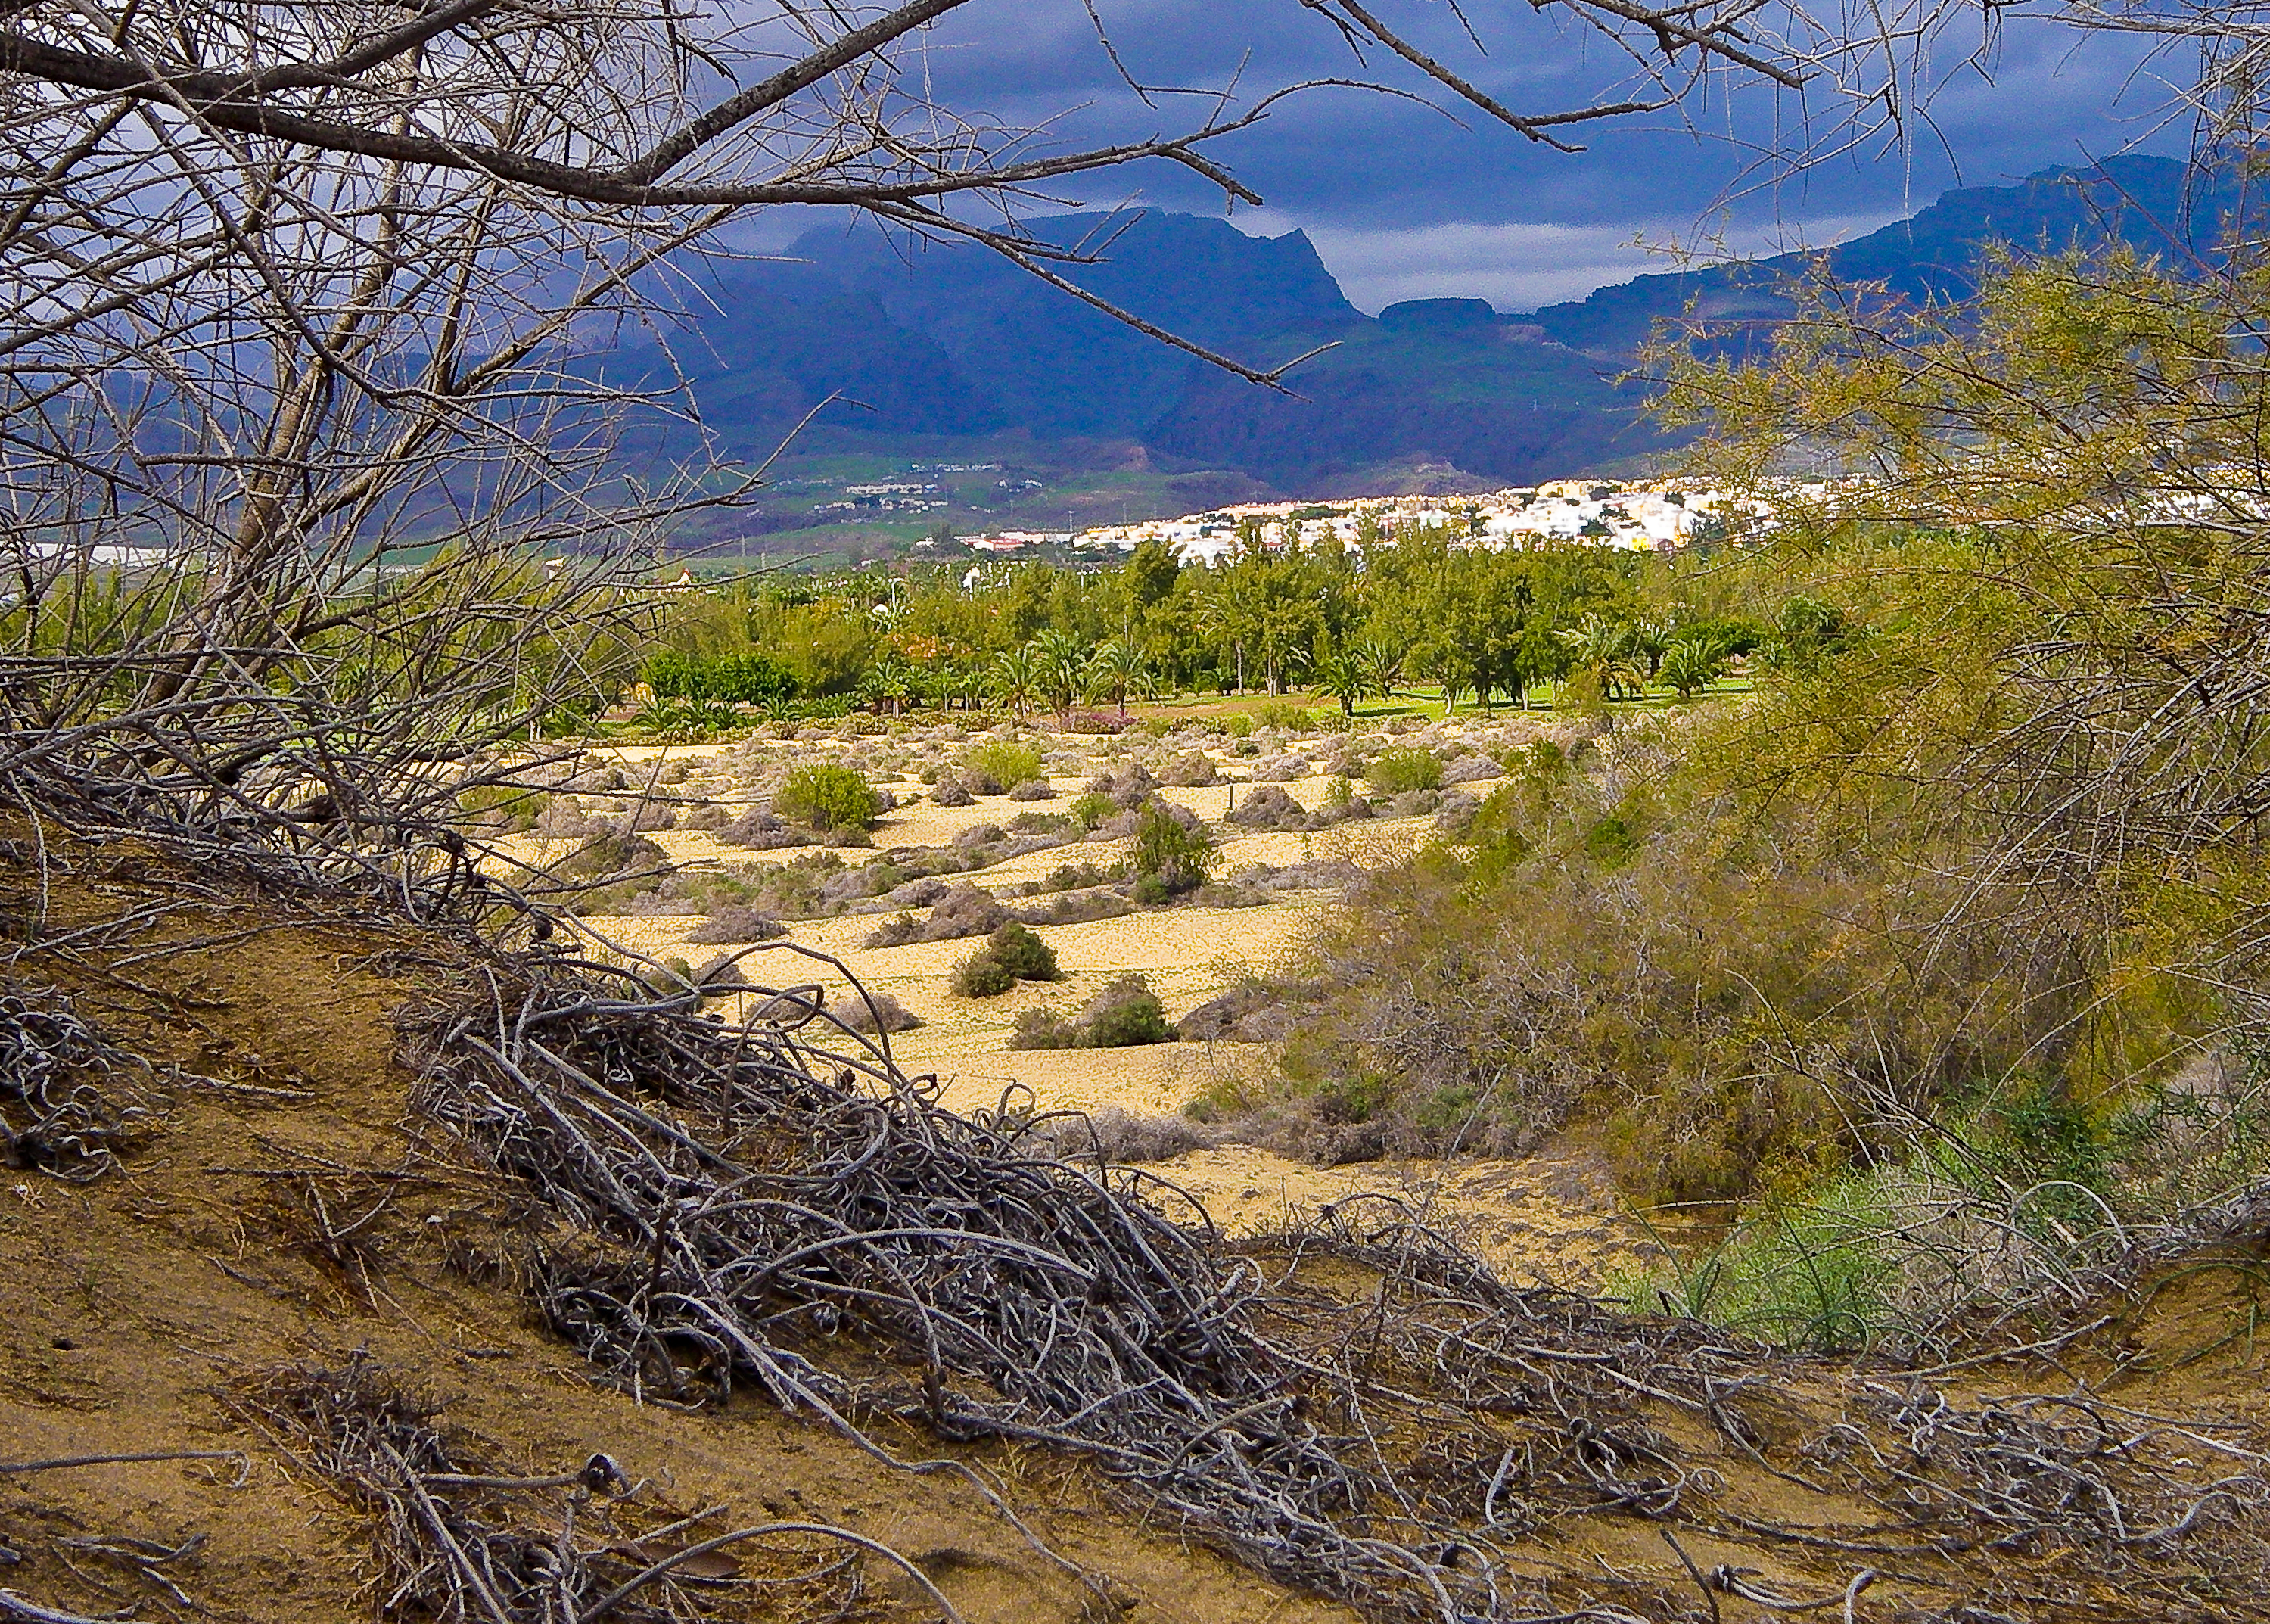 Scrub and dunes at Maspalomas Gran Canaria